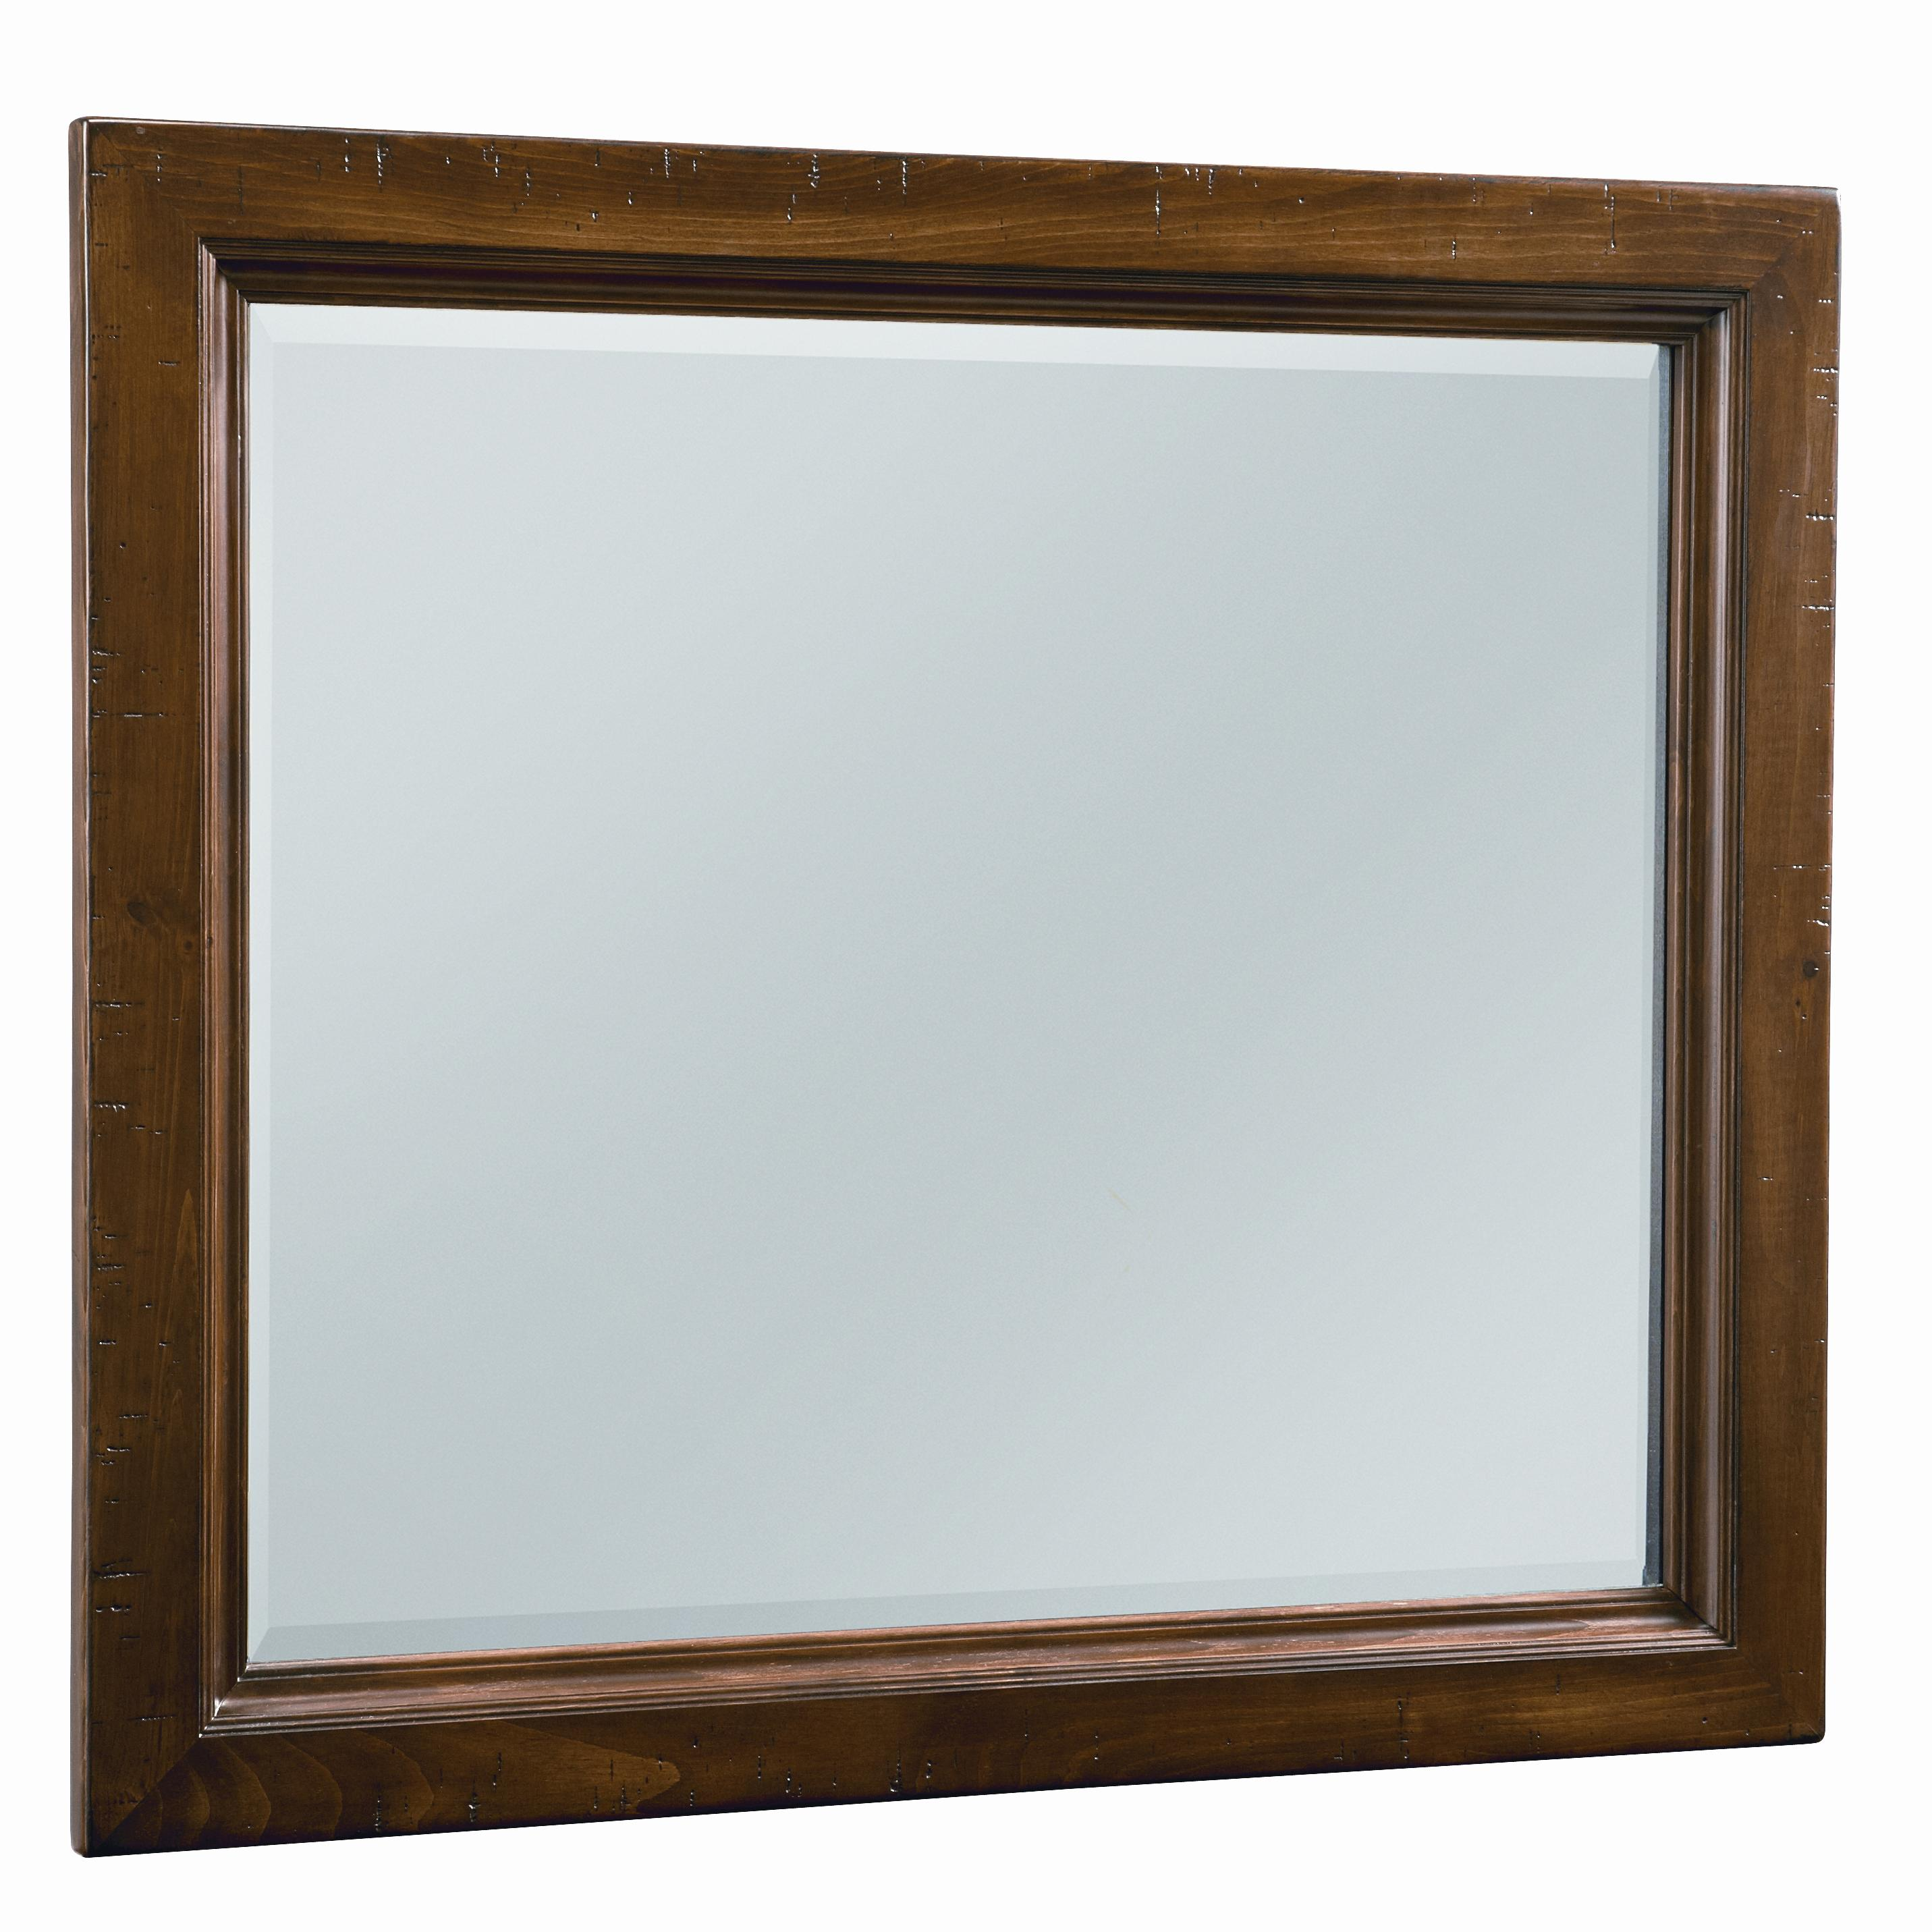 Vaughan Bassett Timber Mill Chesser Mirror - bevel glass - Item Number: BB58-446